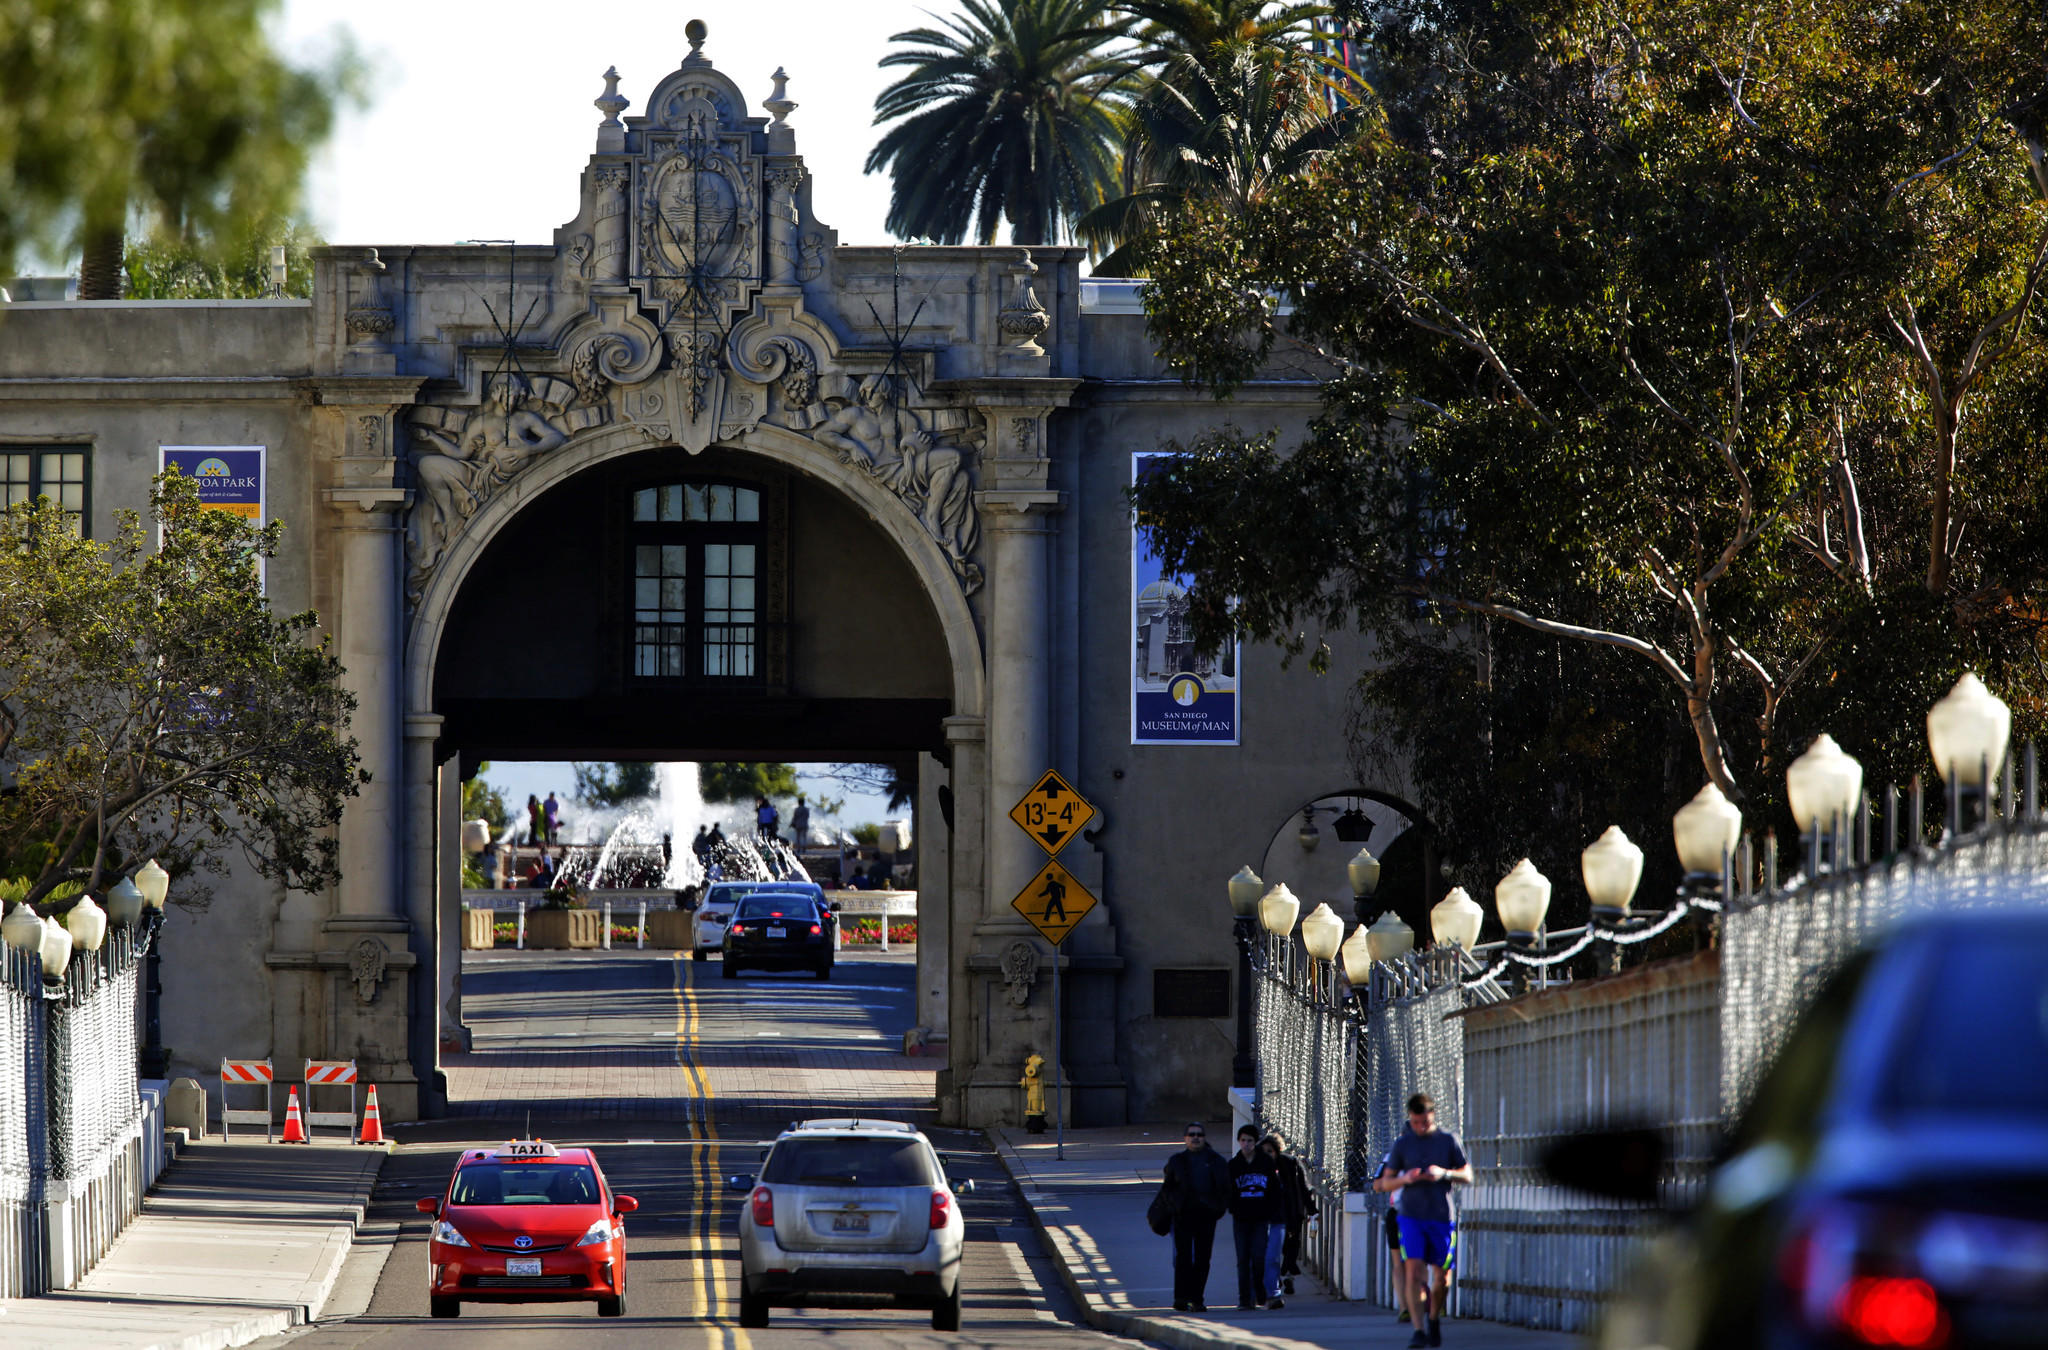 The Cabrillo Bridge in Balboa Park.